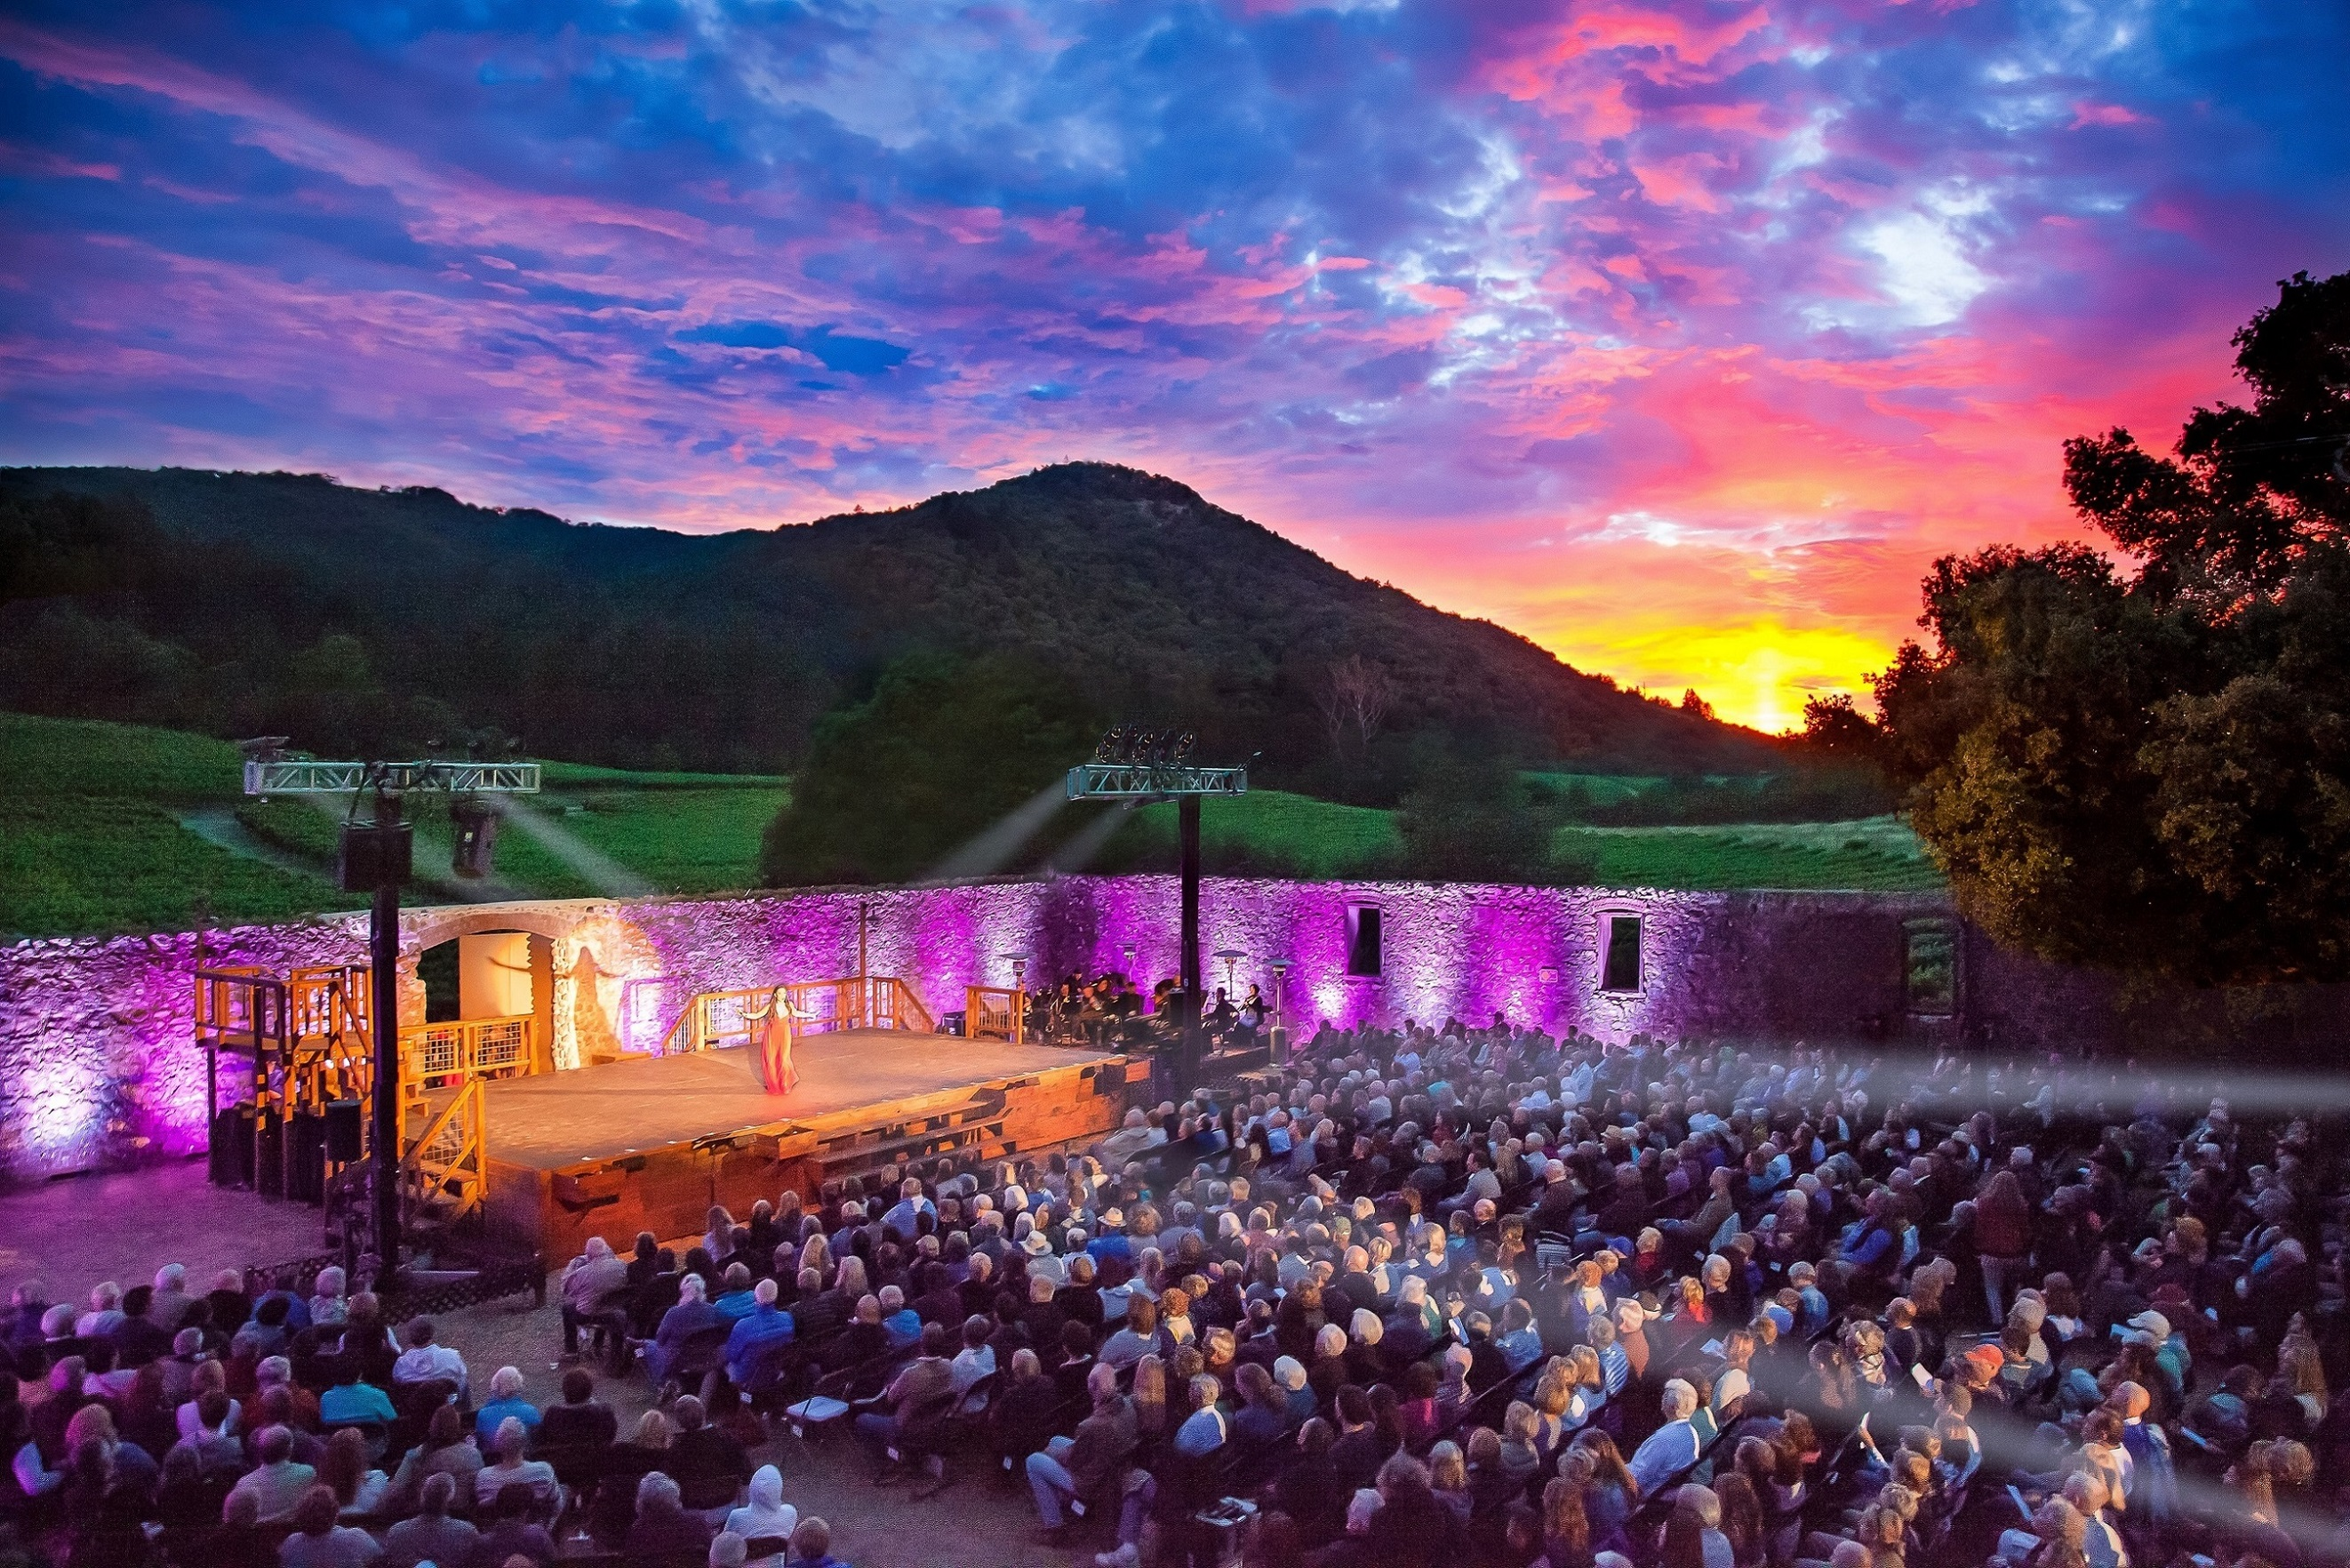 Broadway Under the Stars at Jack London State Historic Park in Sonoma County, California